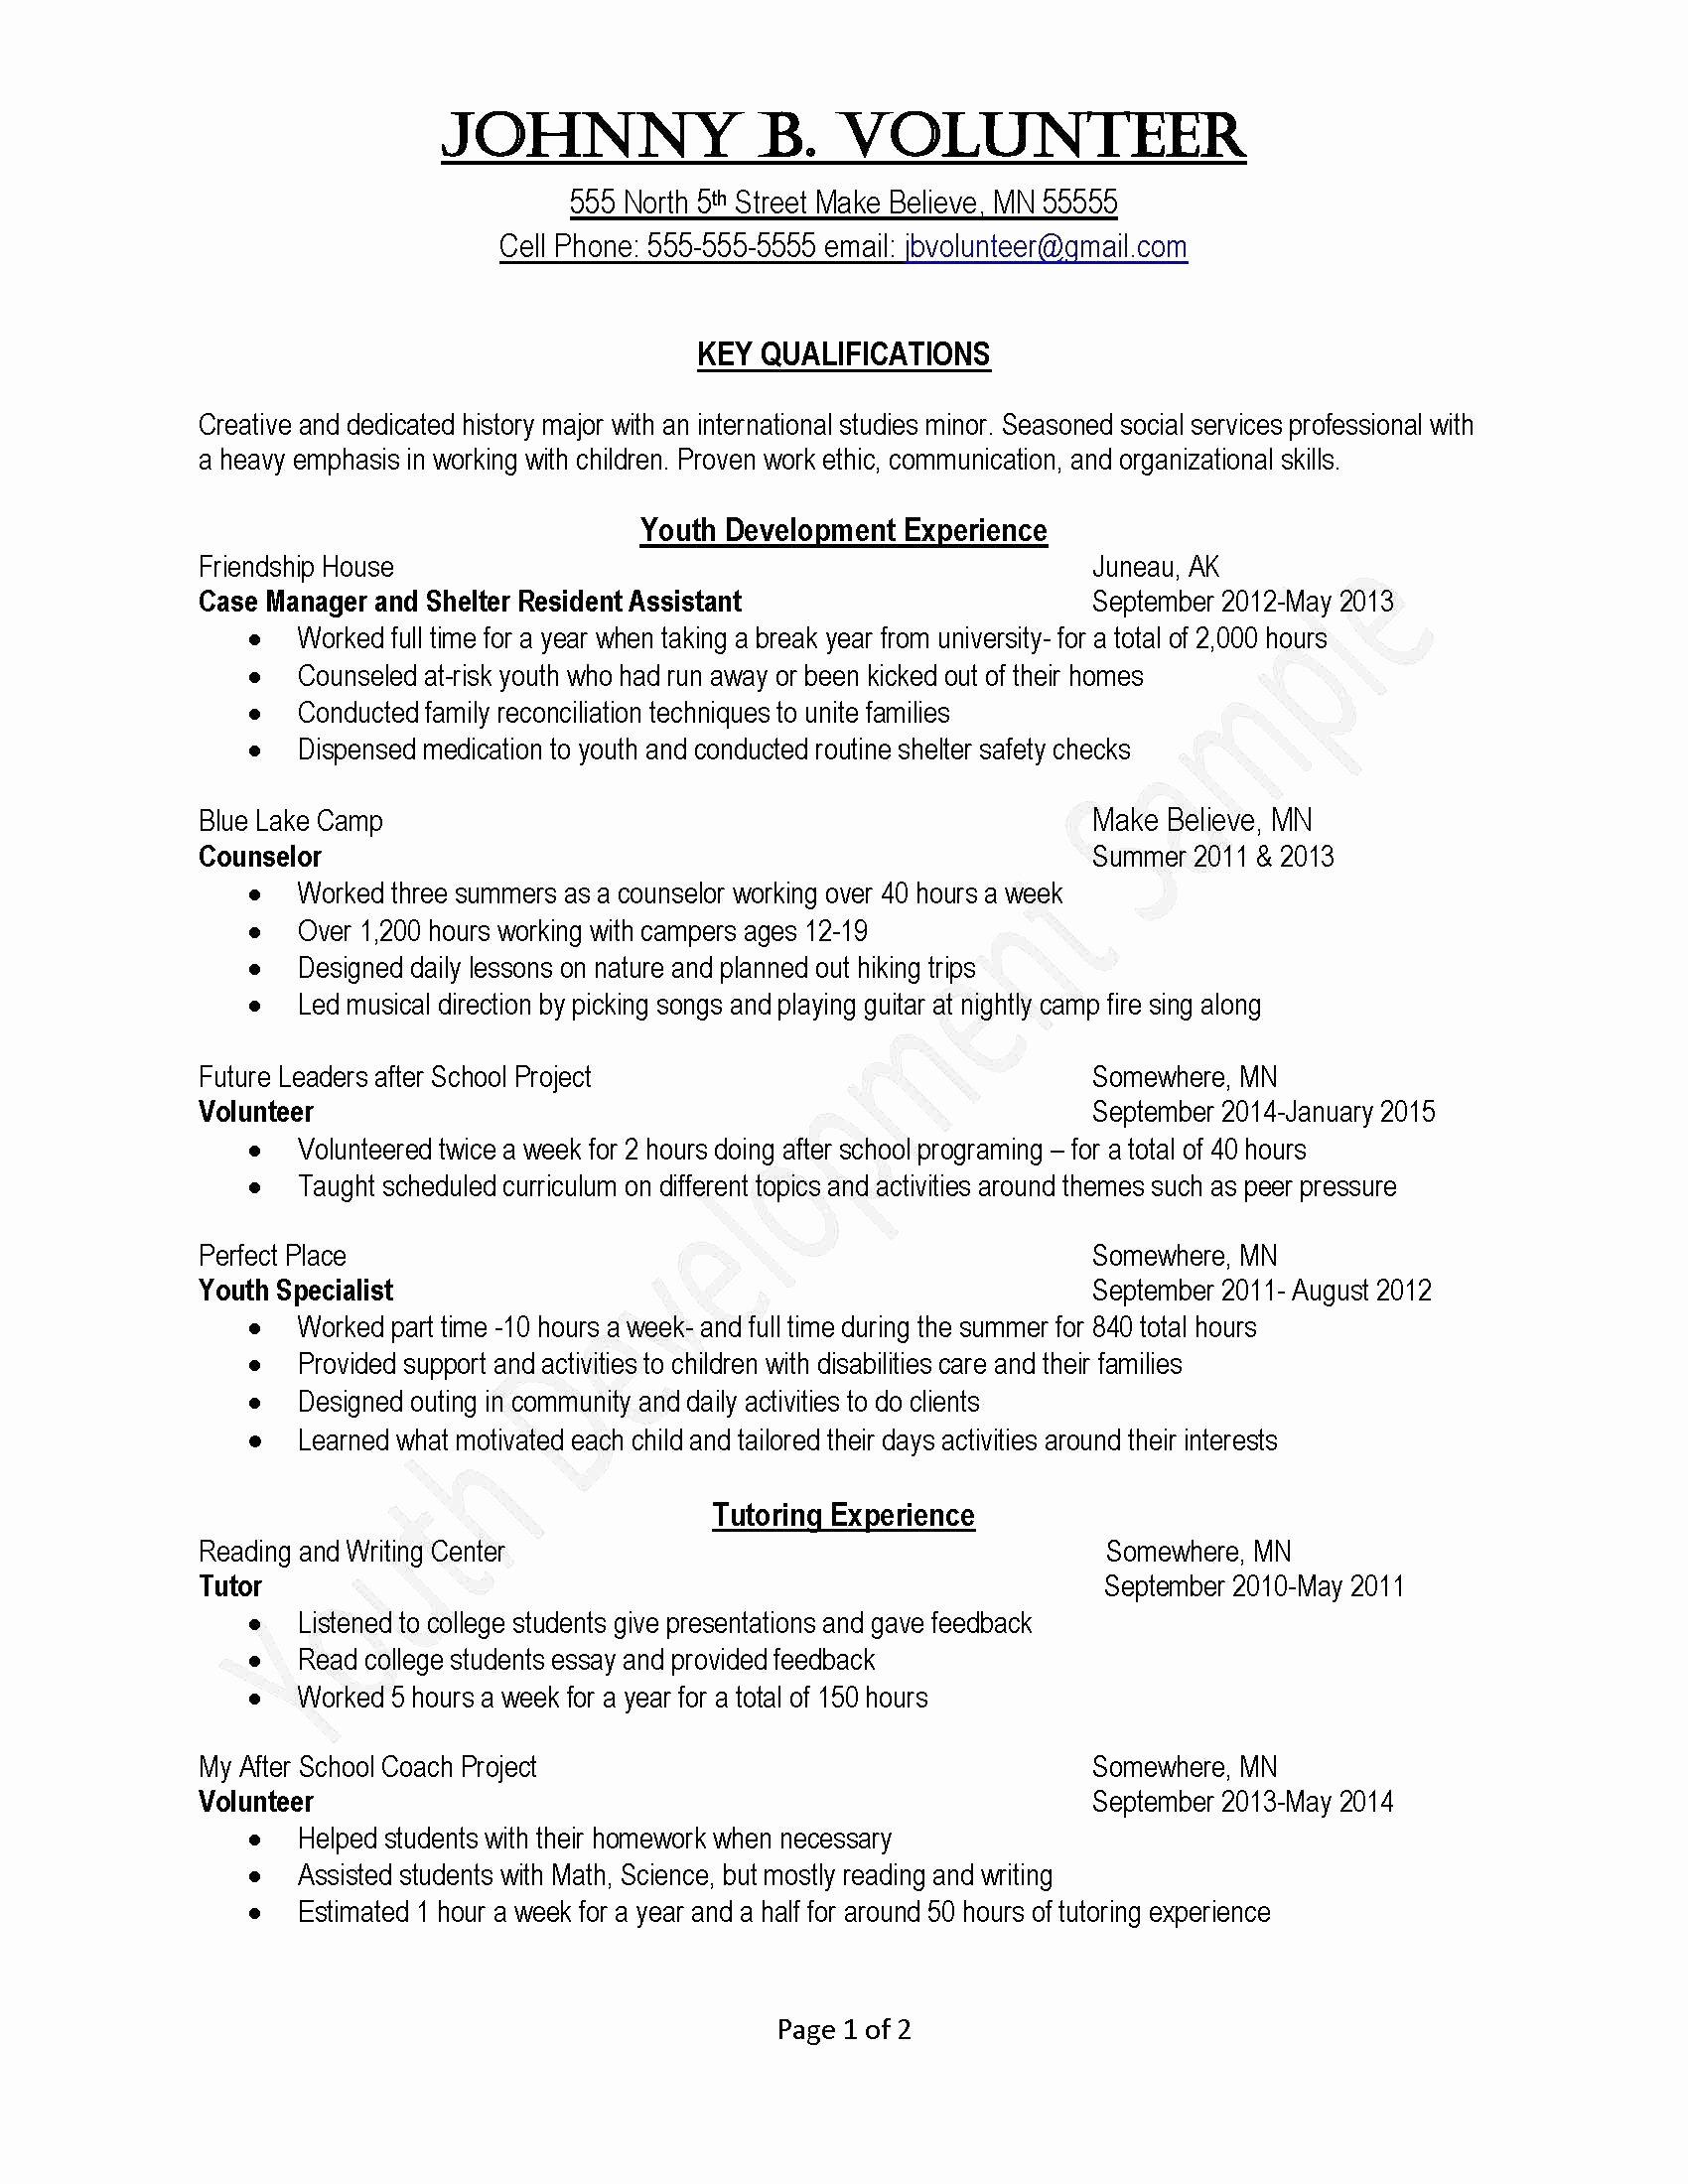 How to Create A Cover Letter Template - Good Cover Letters for Jobs Unique Simple Cover Letter Template